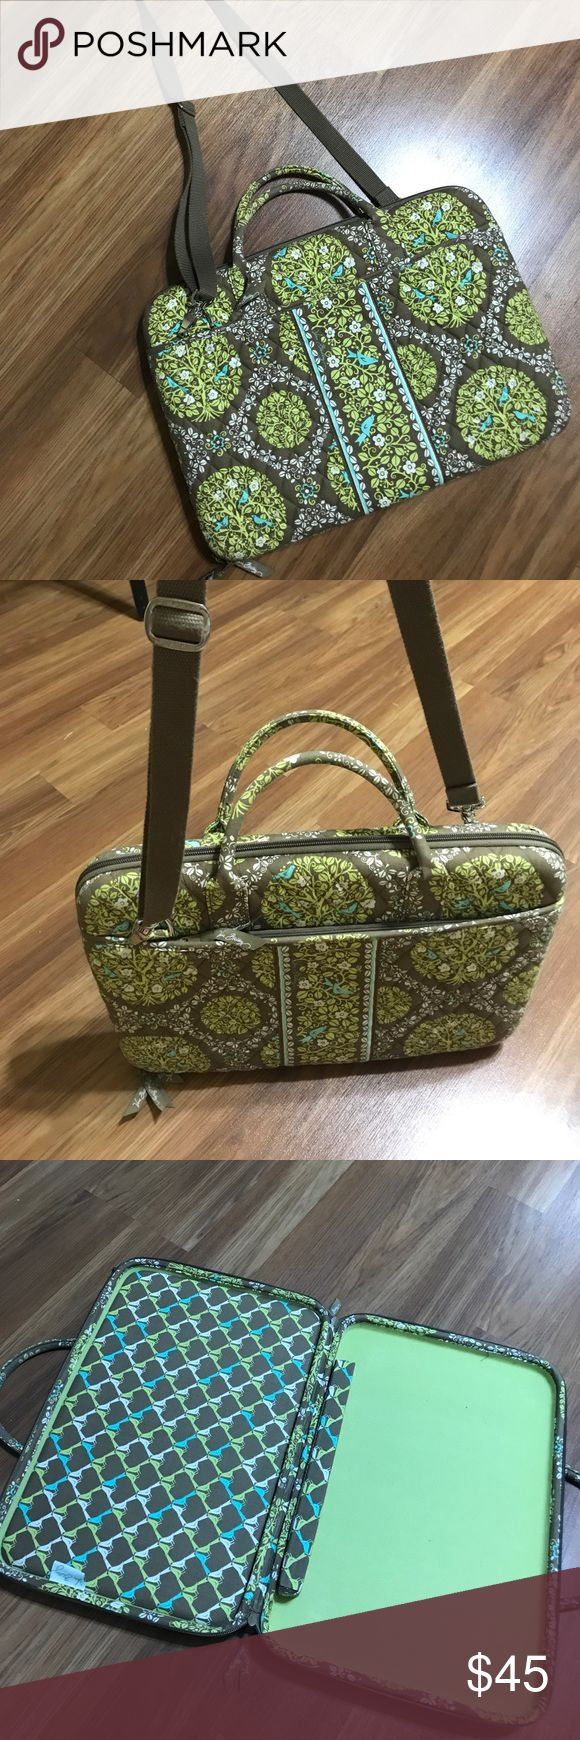 "Vera Bradley laptop case Nice case,size 16""X11"" Vera Bradley Accessories Laptop Cases"